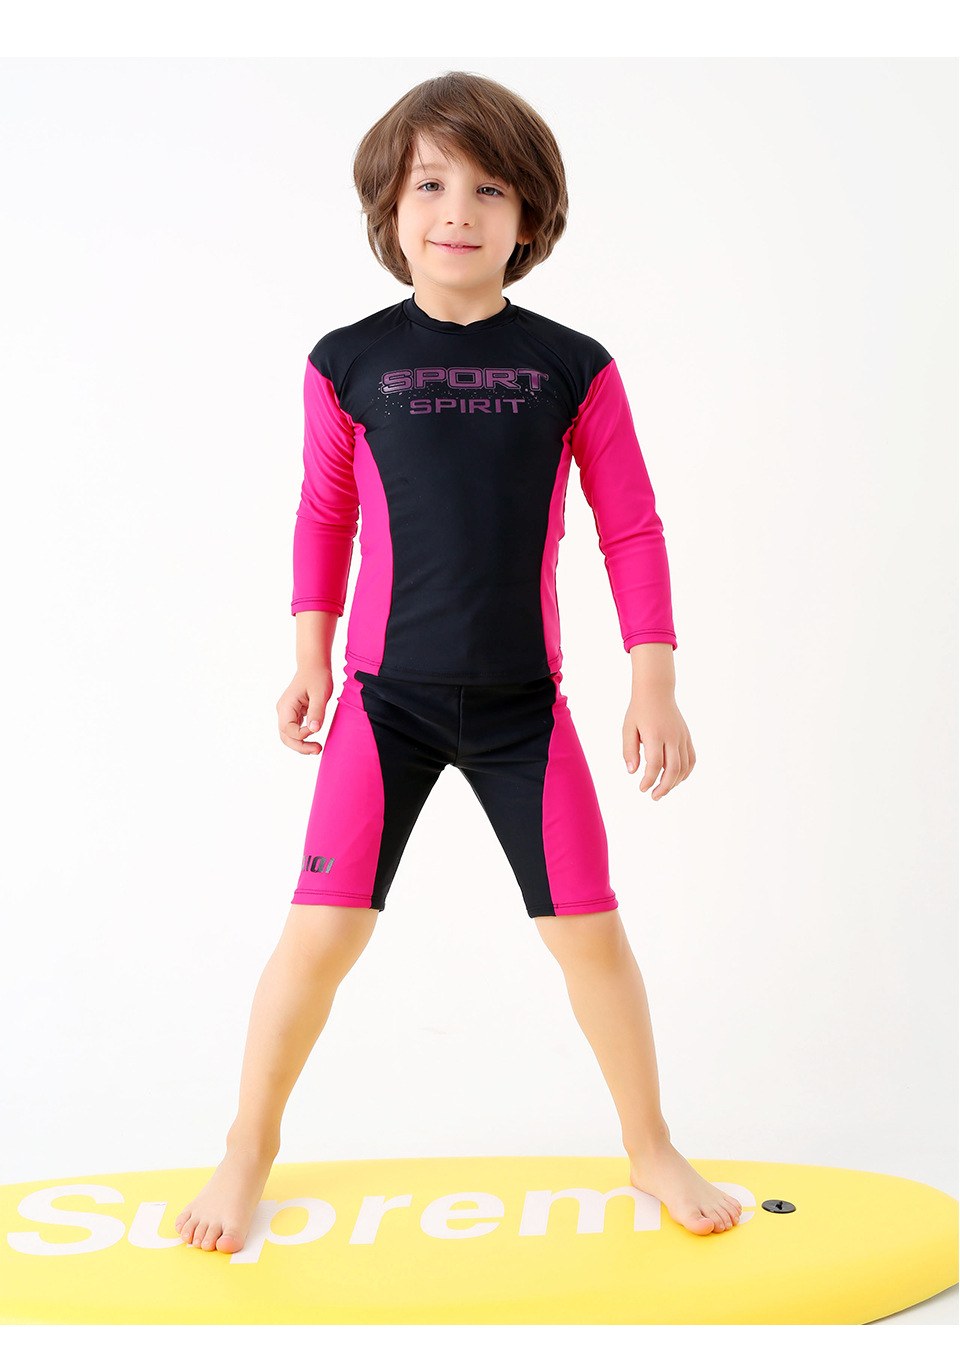 Competition Boy 2019 Swimsuit Two Piece Swimwear Child Bathing Suit Kids  Swimming Suit Beach Set Diving Suit Surfing Suit Black 158ddd618ae